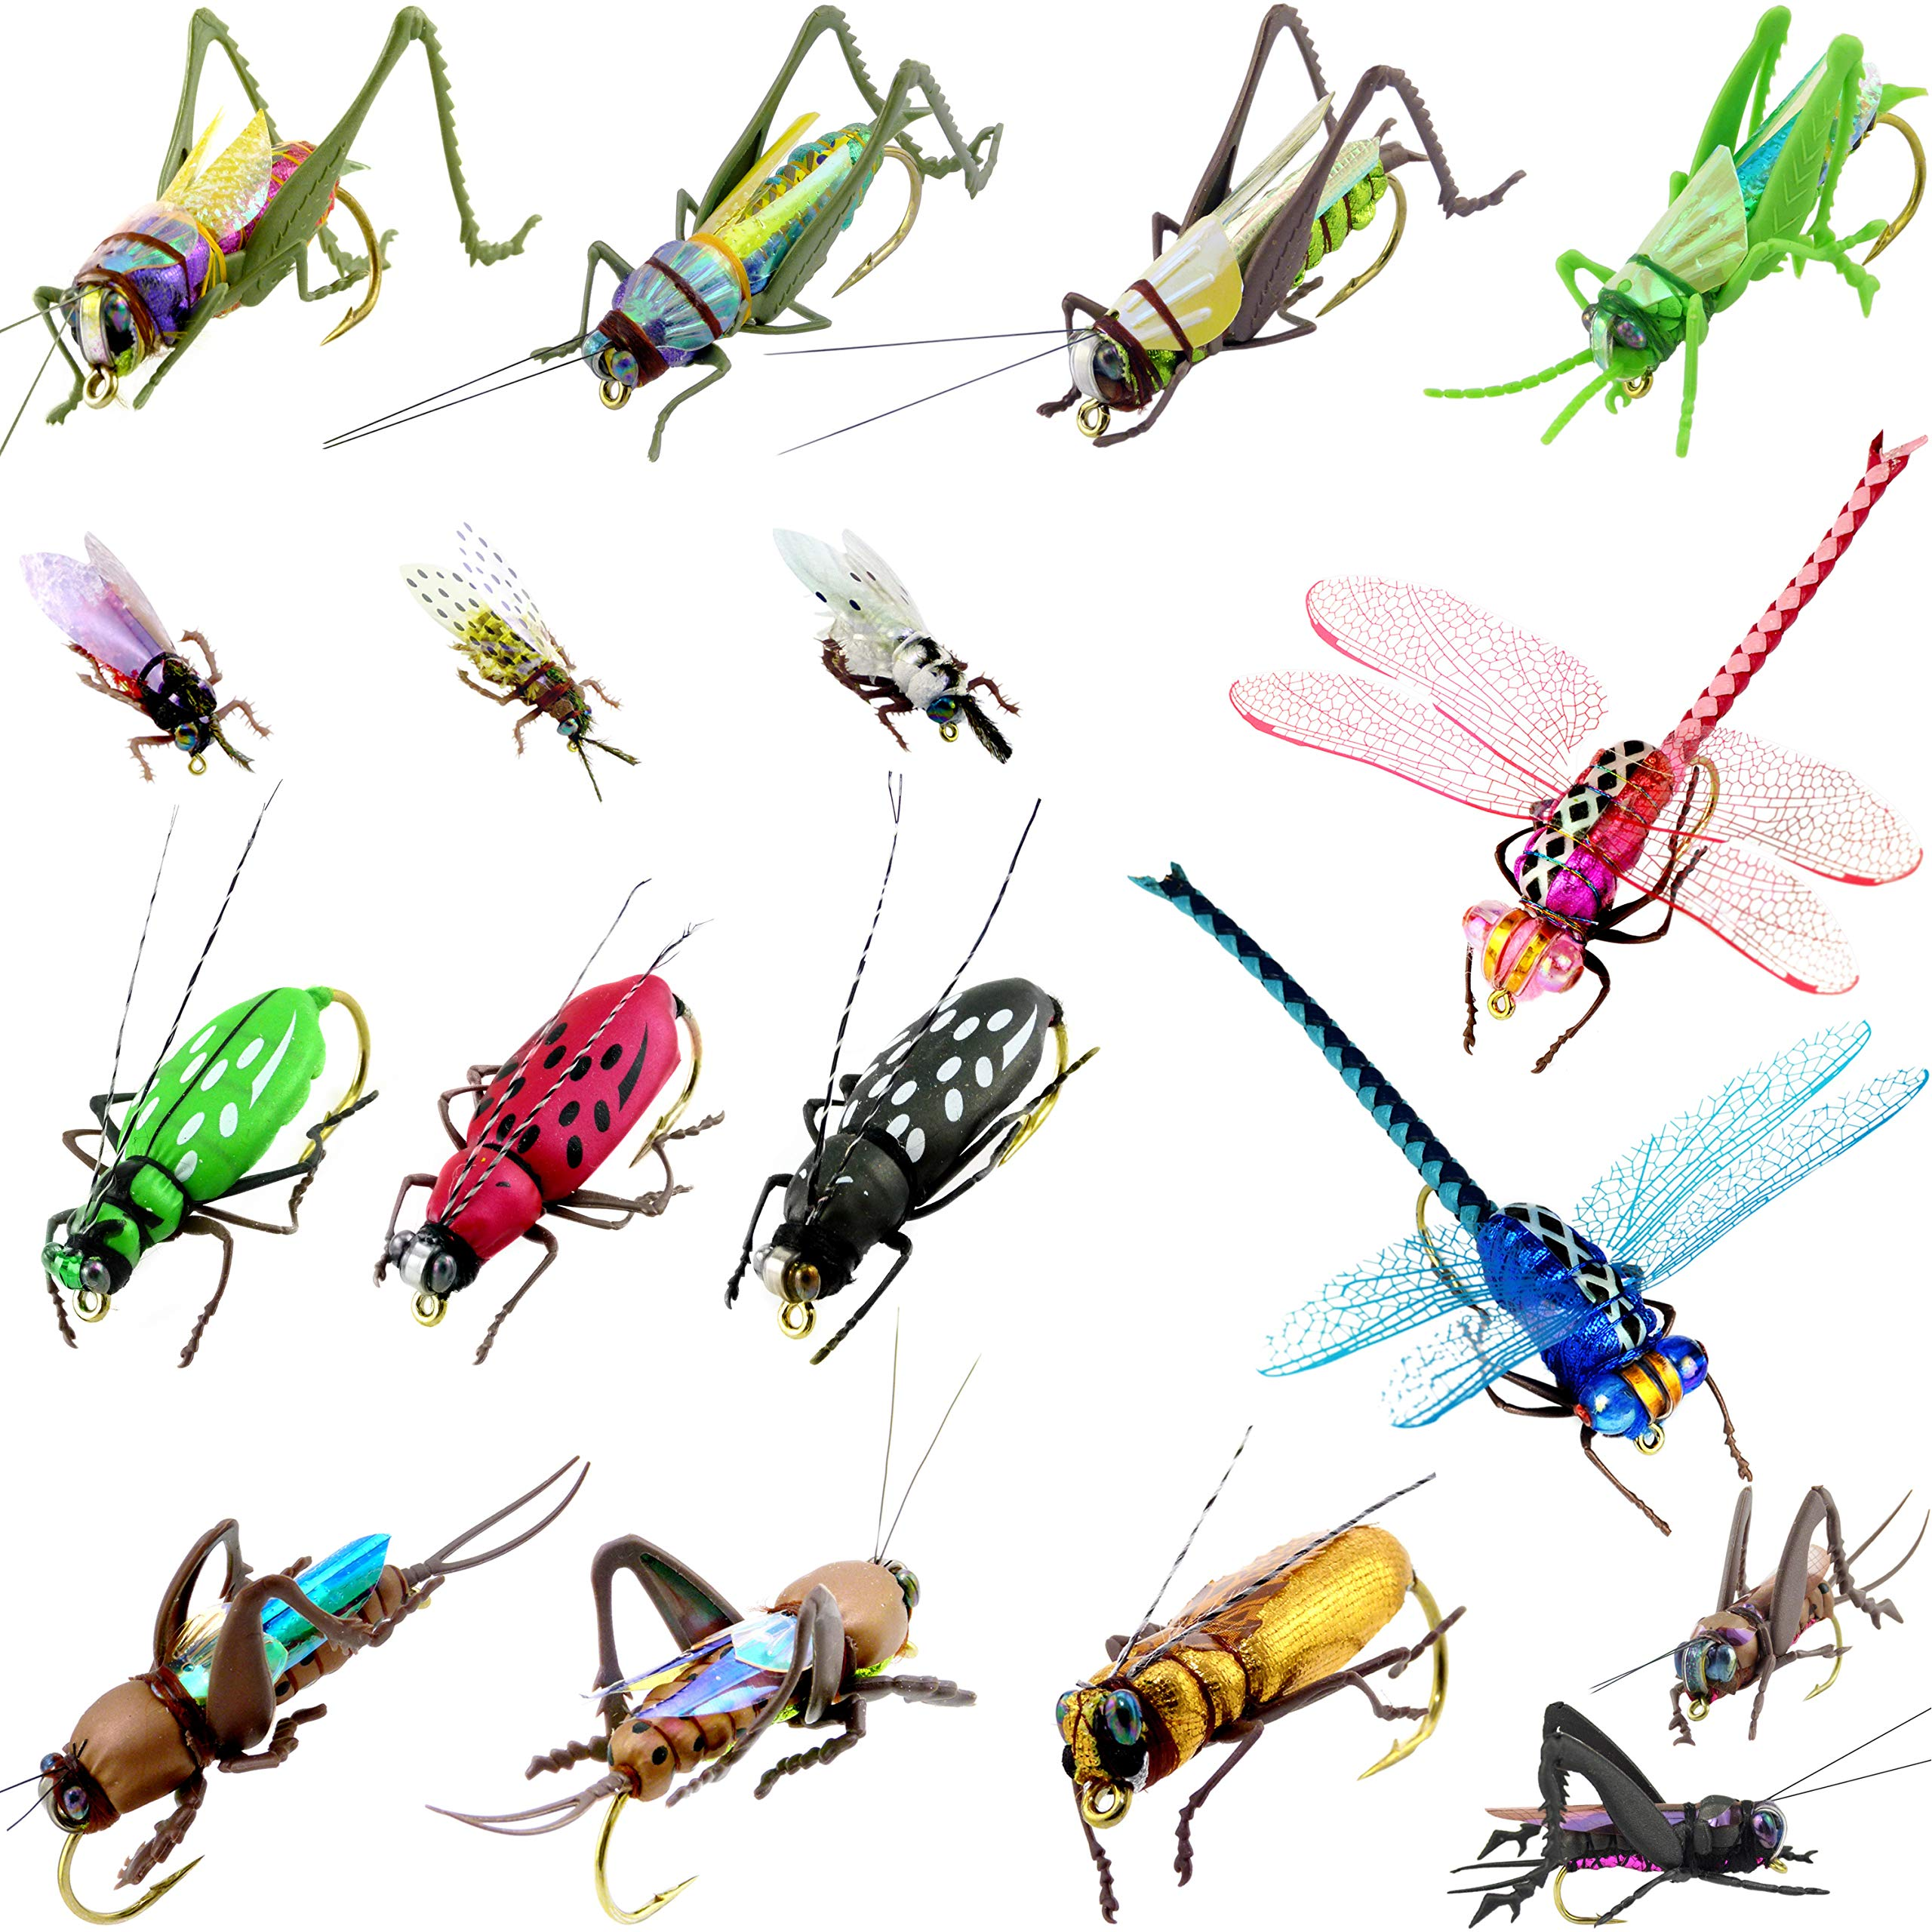 YAZHIDA Realistic Flies Fly Fishing Flies kit - Handmade Dry/Wet/Fly Fishing Lures - 3D Laser Compound Eyes-Waterproof Fly Box (Grasshopper Combination)